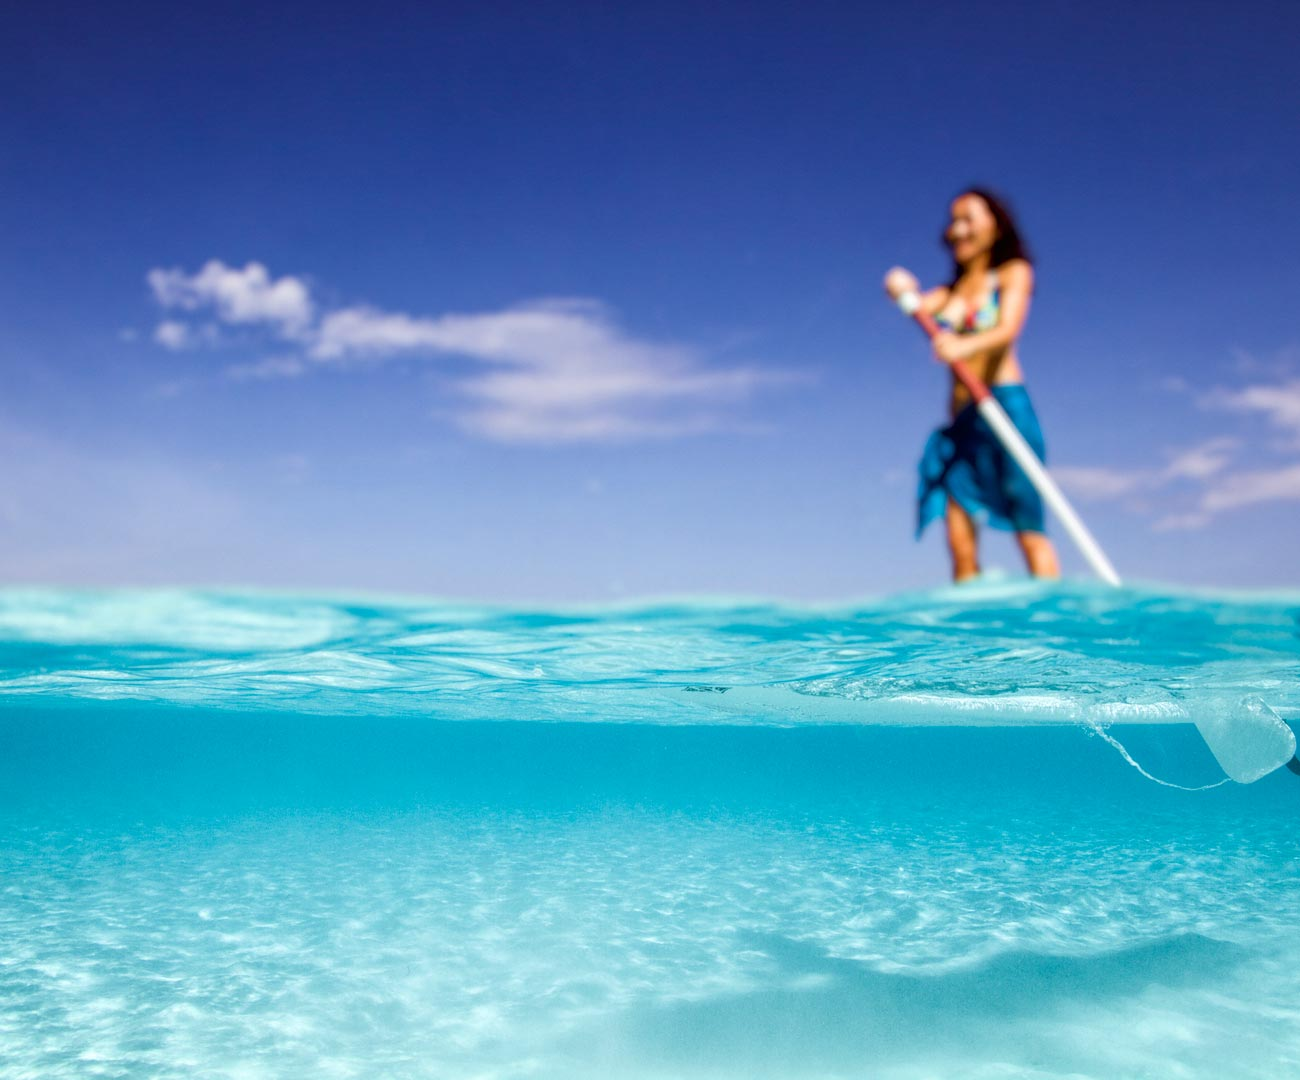 Stand Up Paddle Boarding in the Maldives Image | Kurumba Maldives Watersports